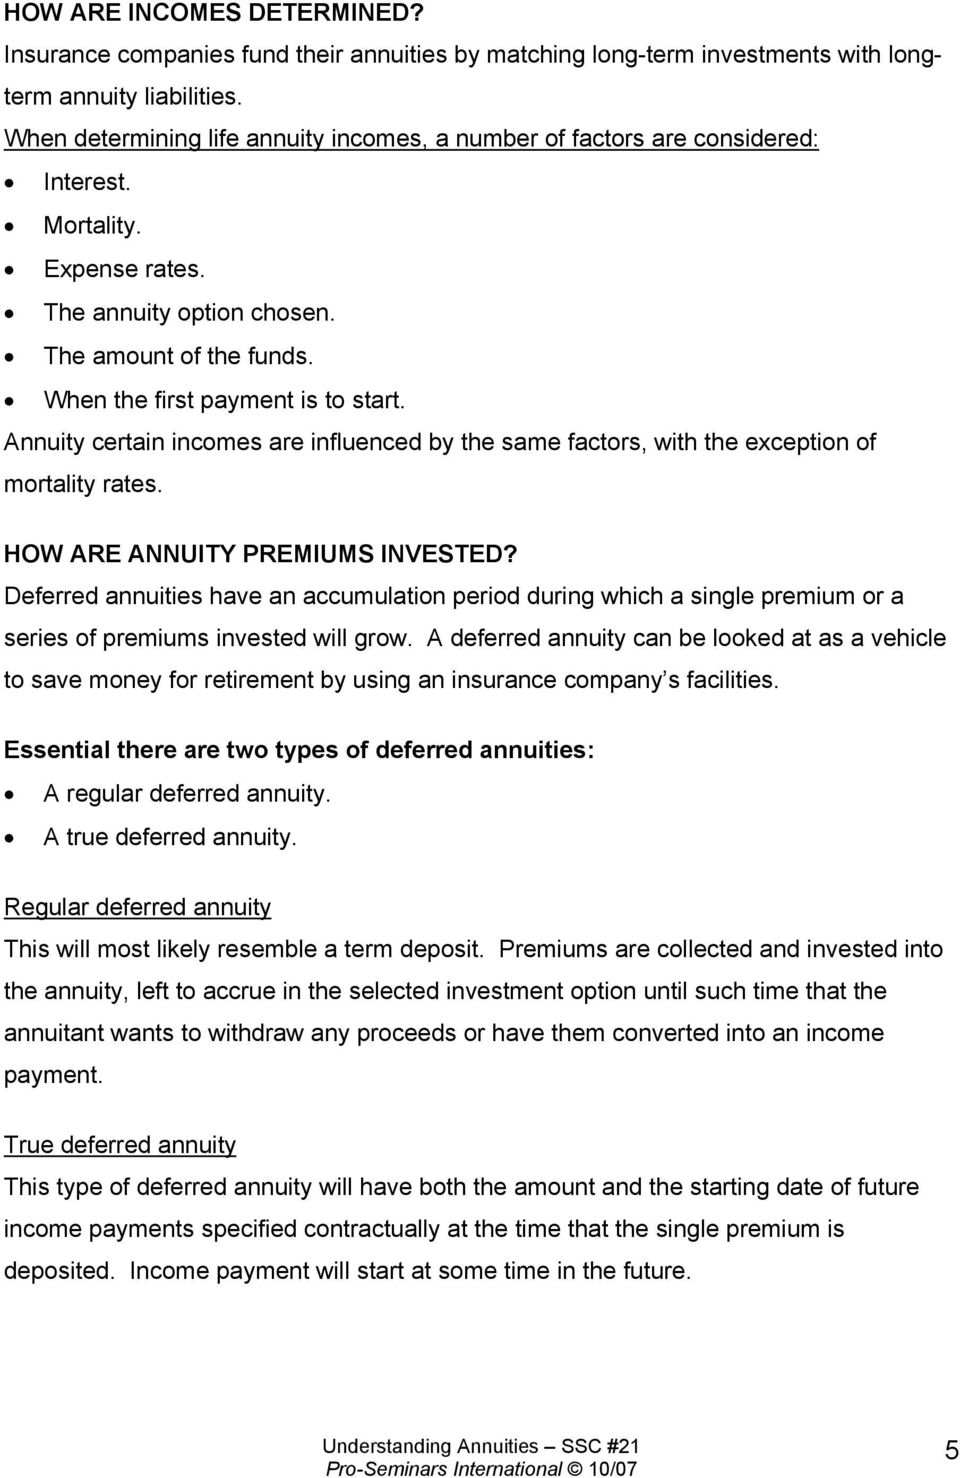 Annuity certain incomes are influenced by the same factors, with the exception of mortality rates. HOW ARE ANNUITY PREMIUMS INVESTED?